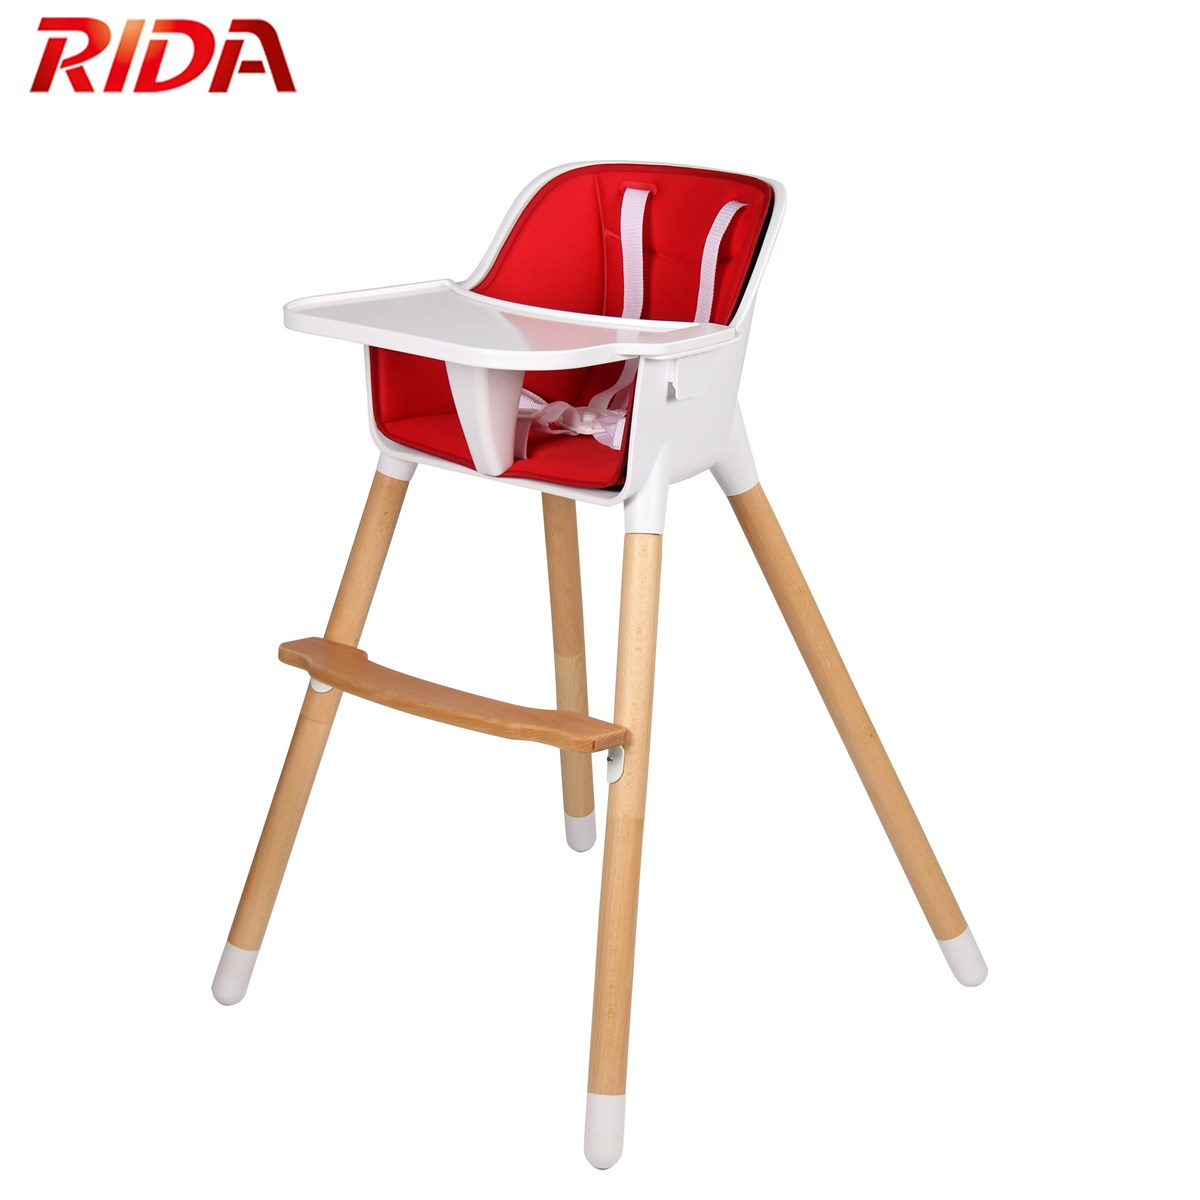 regalo portable high chair what size aeron do i need baby wooden little girl table and set